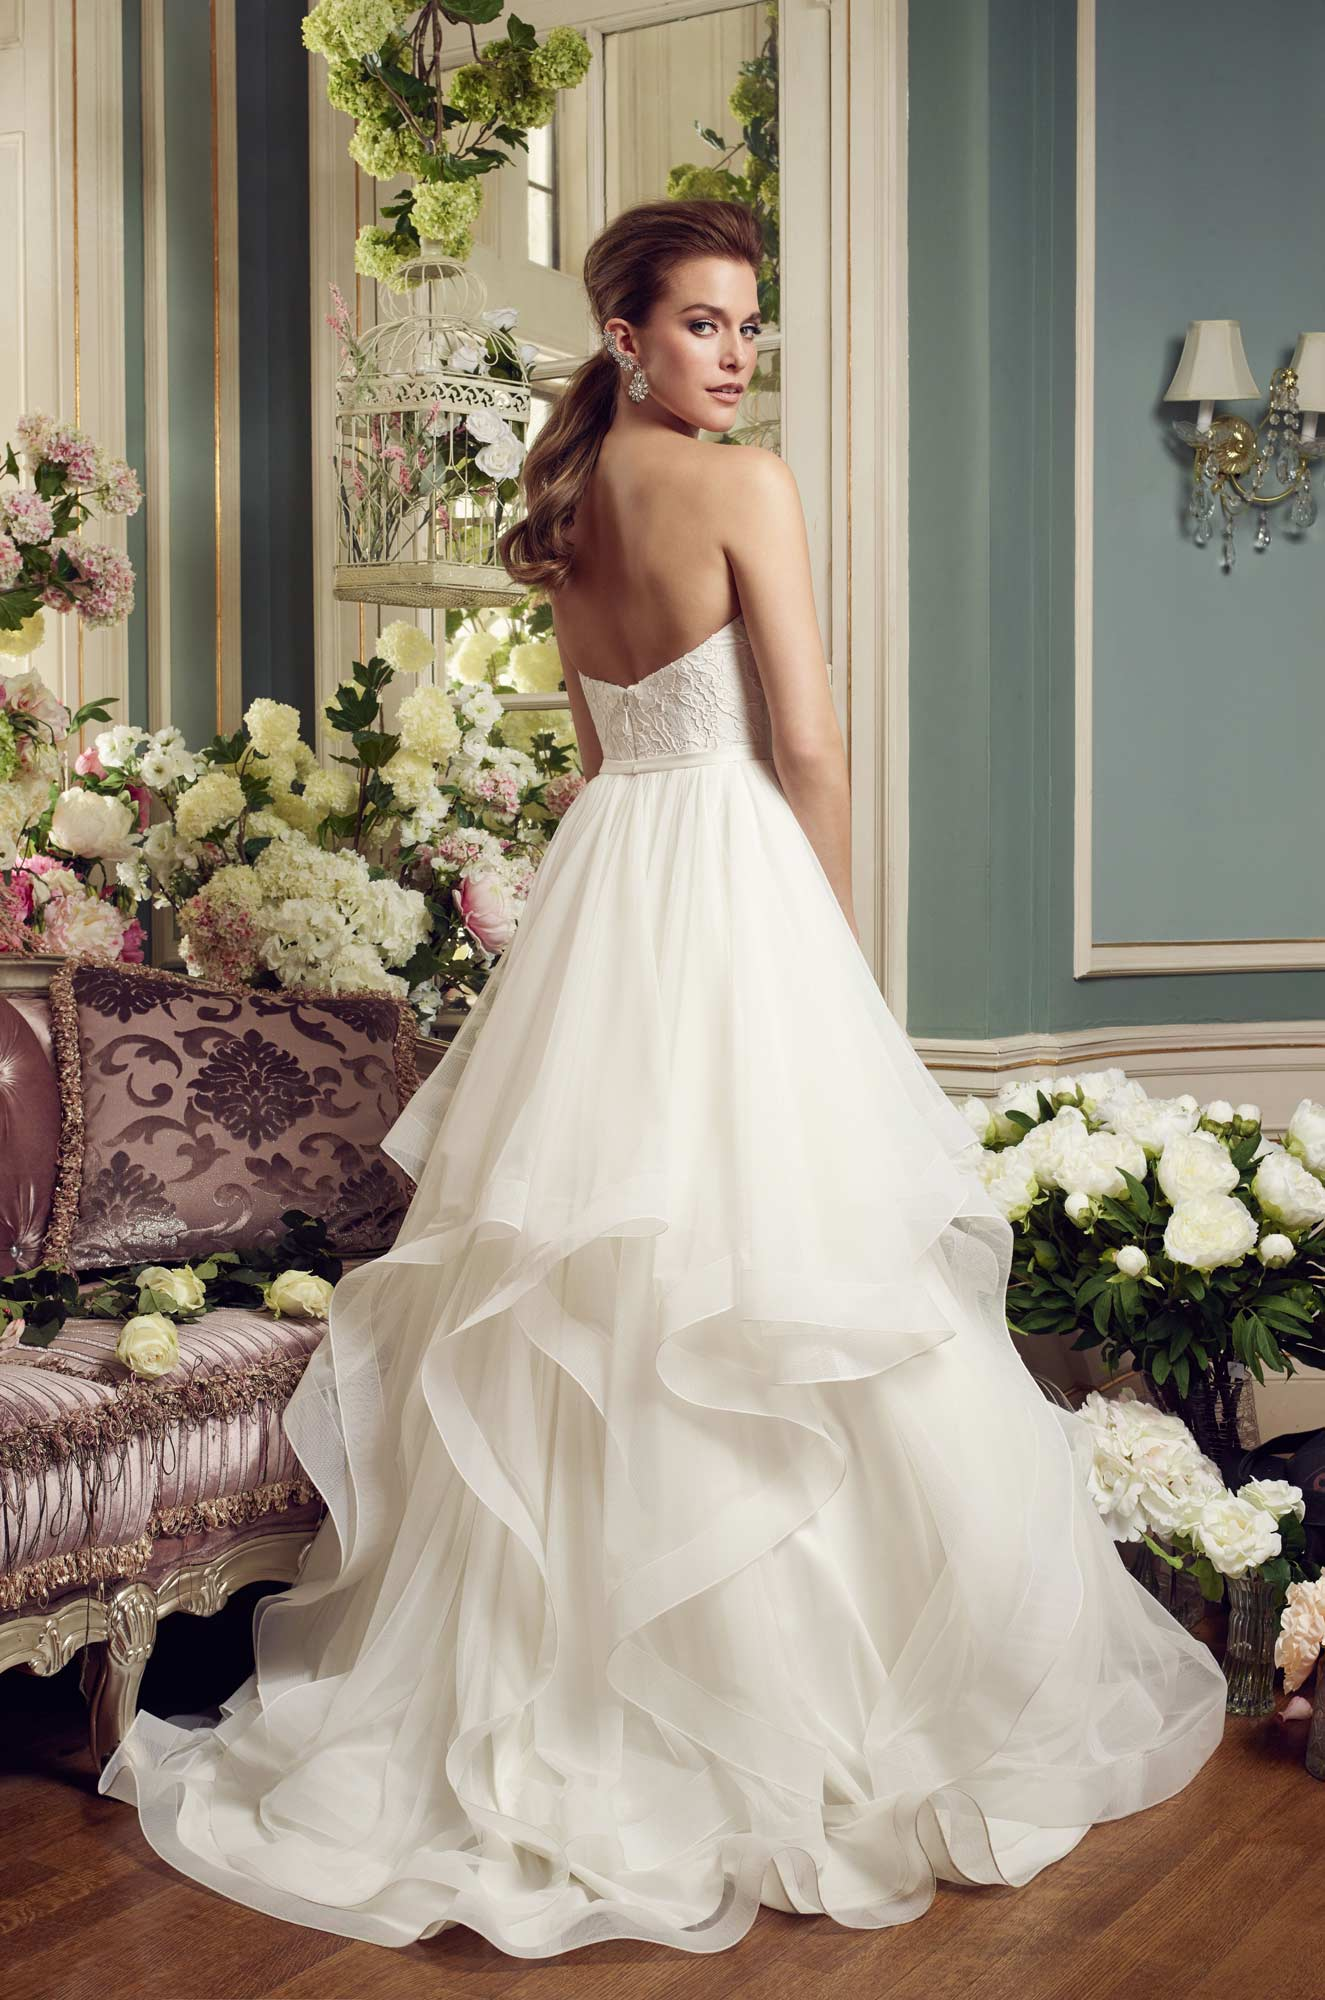 Cascading ruffles wedding dress style 2168 mikaella for Cascading ruffles wedding dress